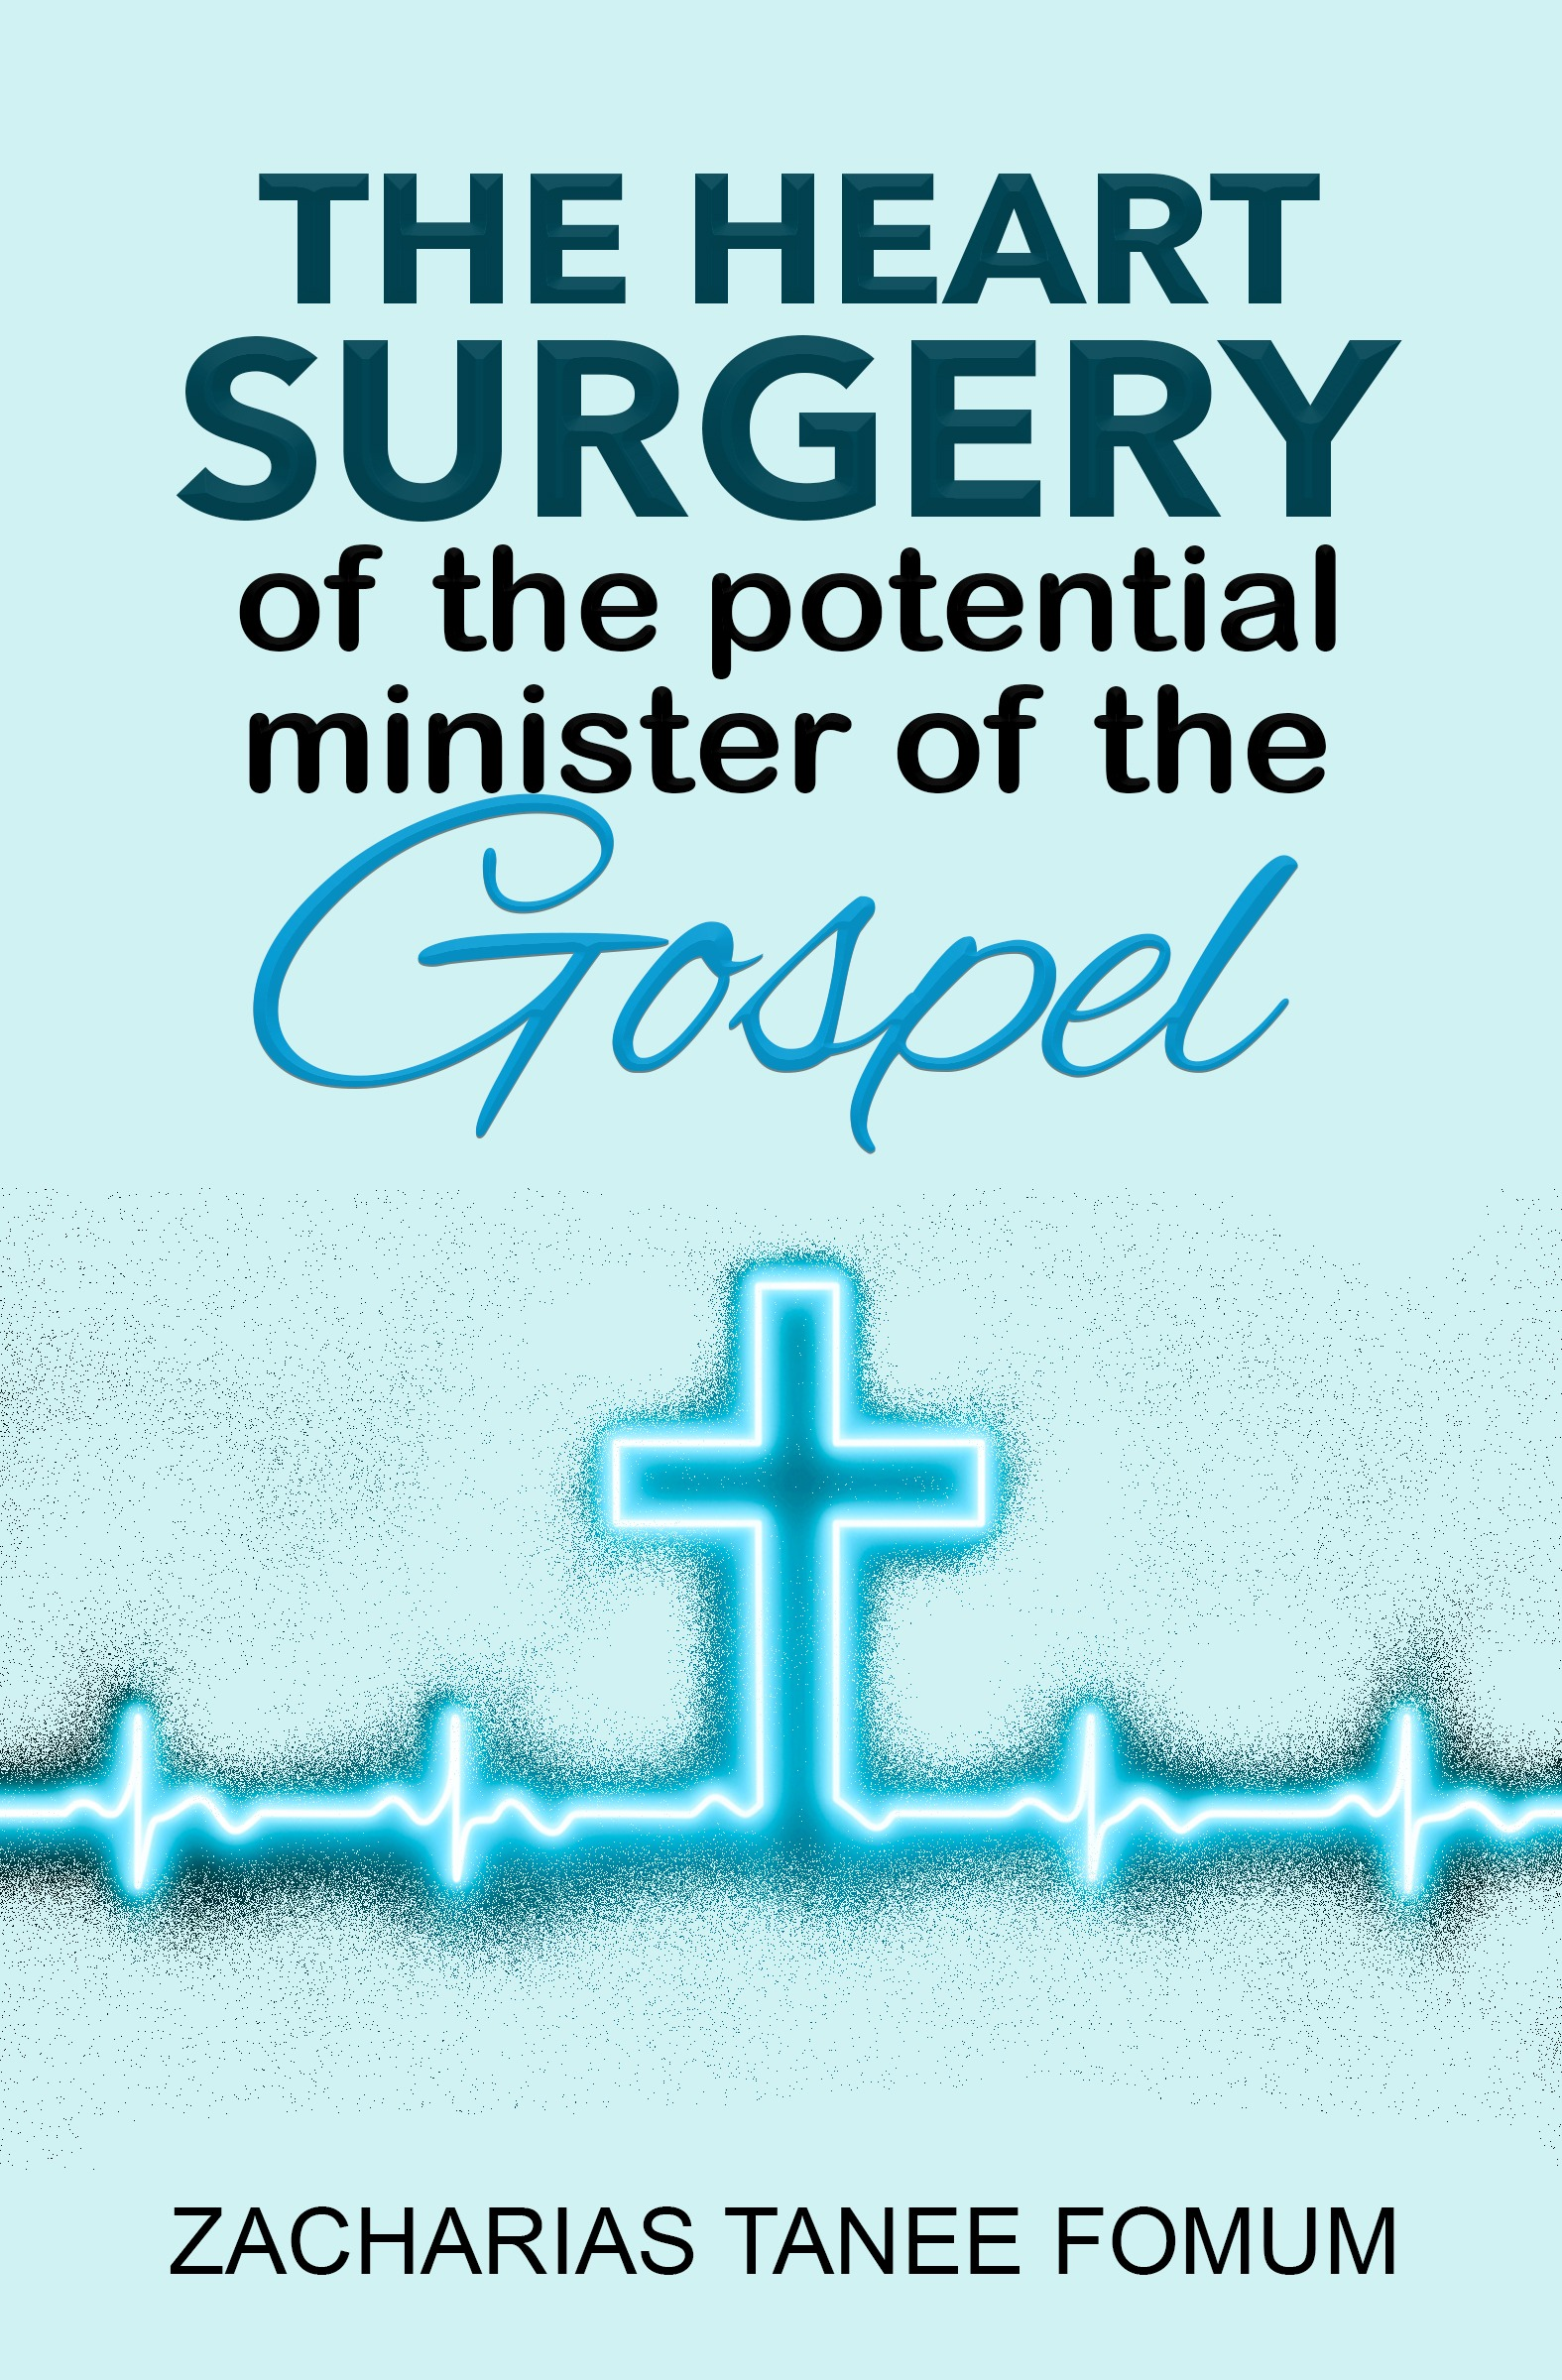 The Heart Surgery of the Potential Minister of the Gospel